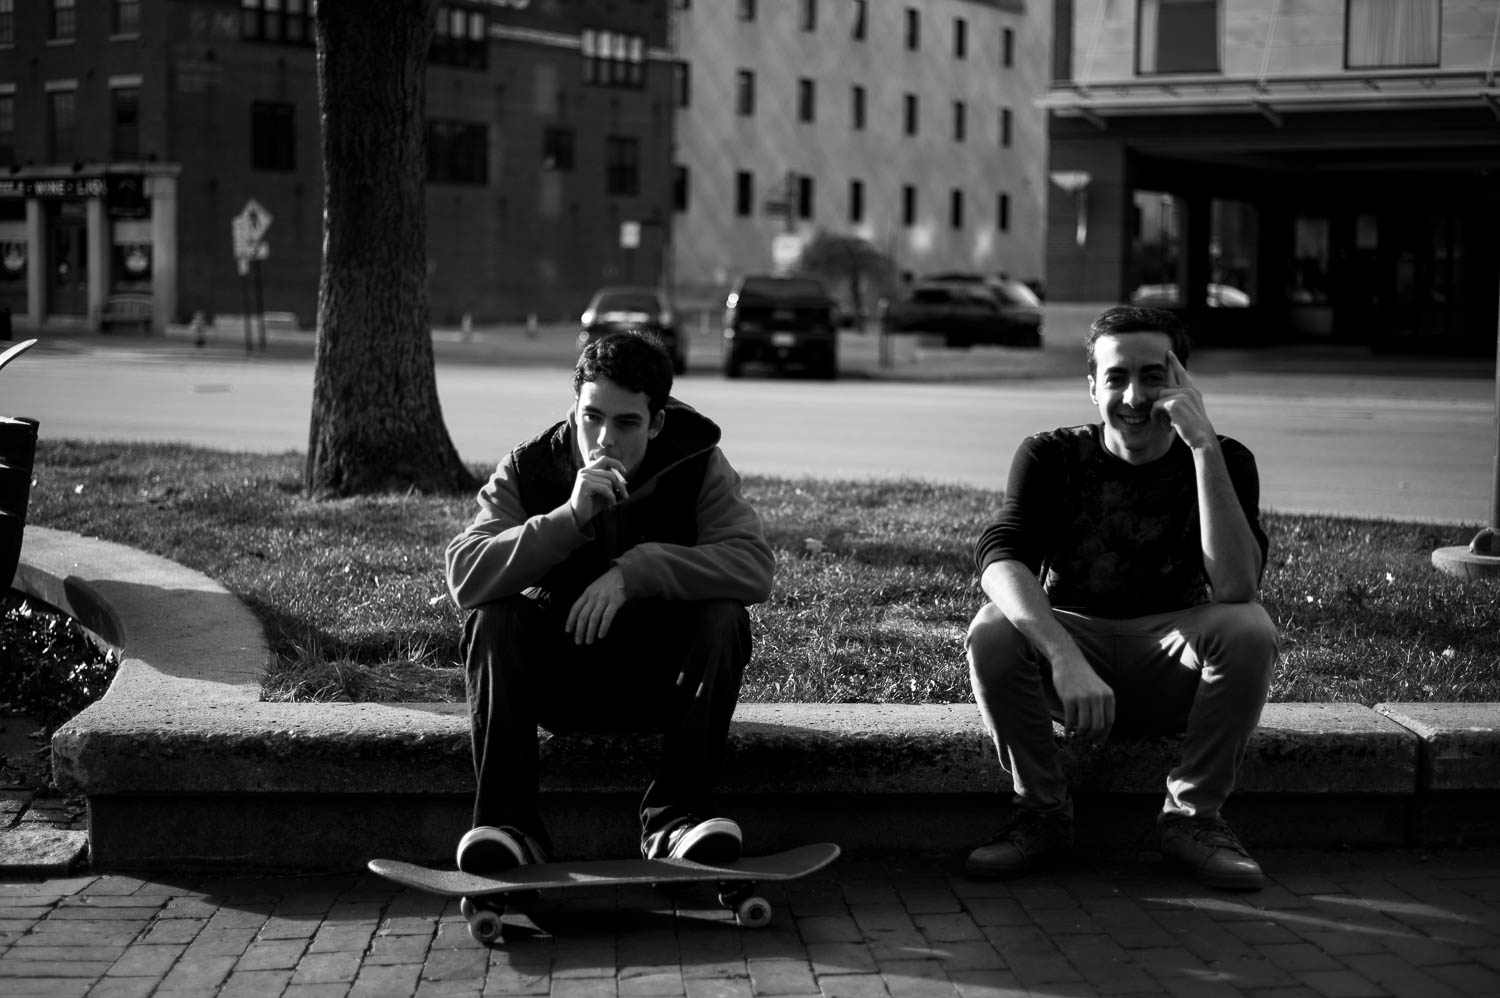 Two skateboarders hanging out and smoking cigarettes